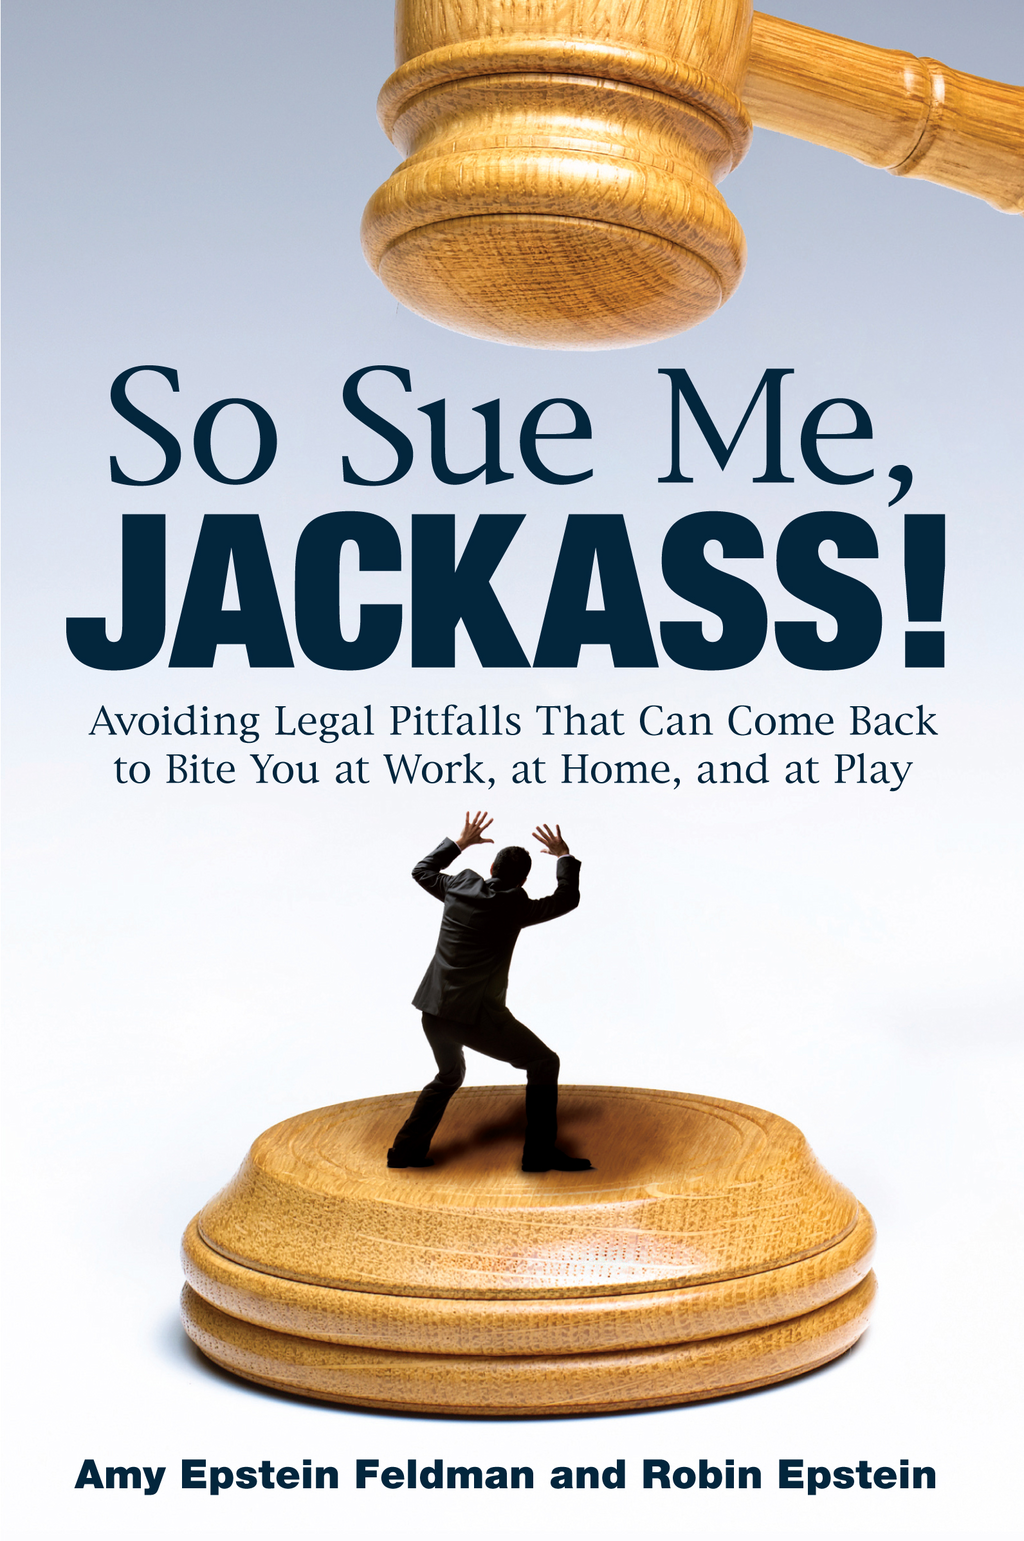 So Sue Me, Jackass!